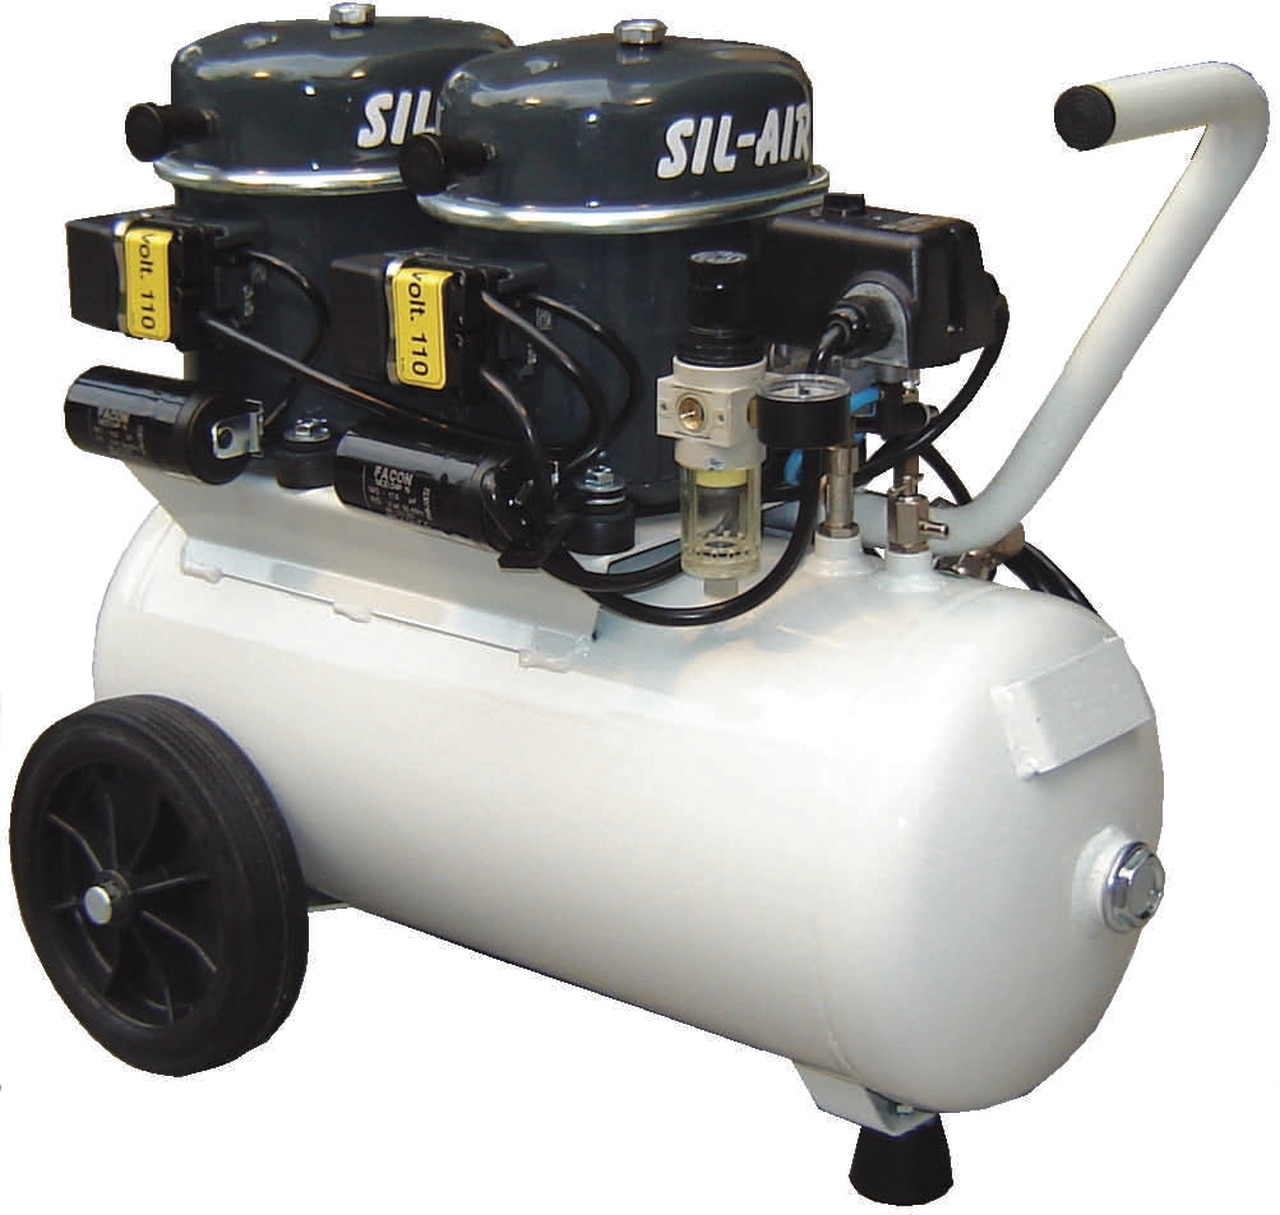 Silentaire Sil-Air 100-24 2x1/2 HP M29090